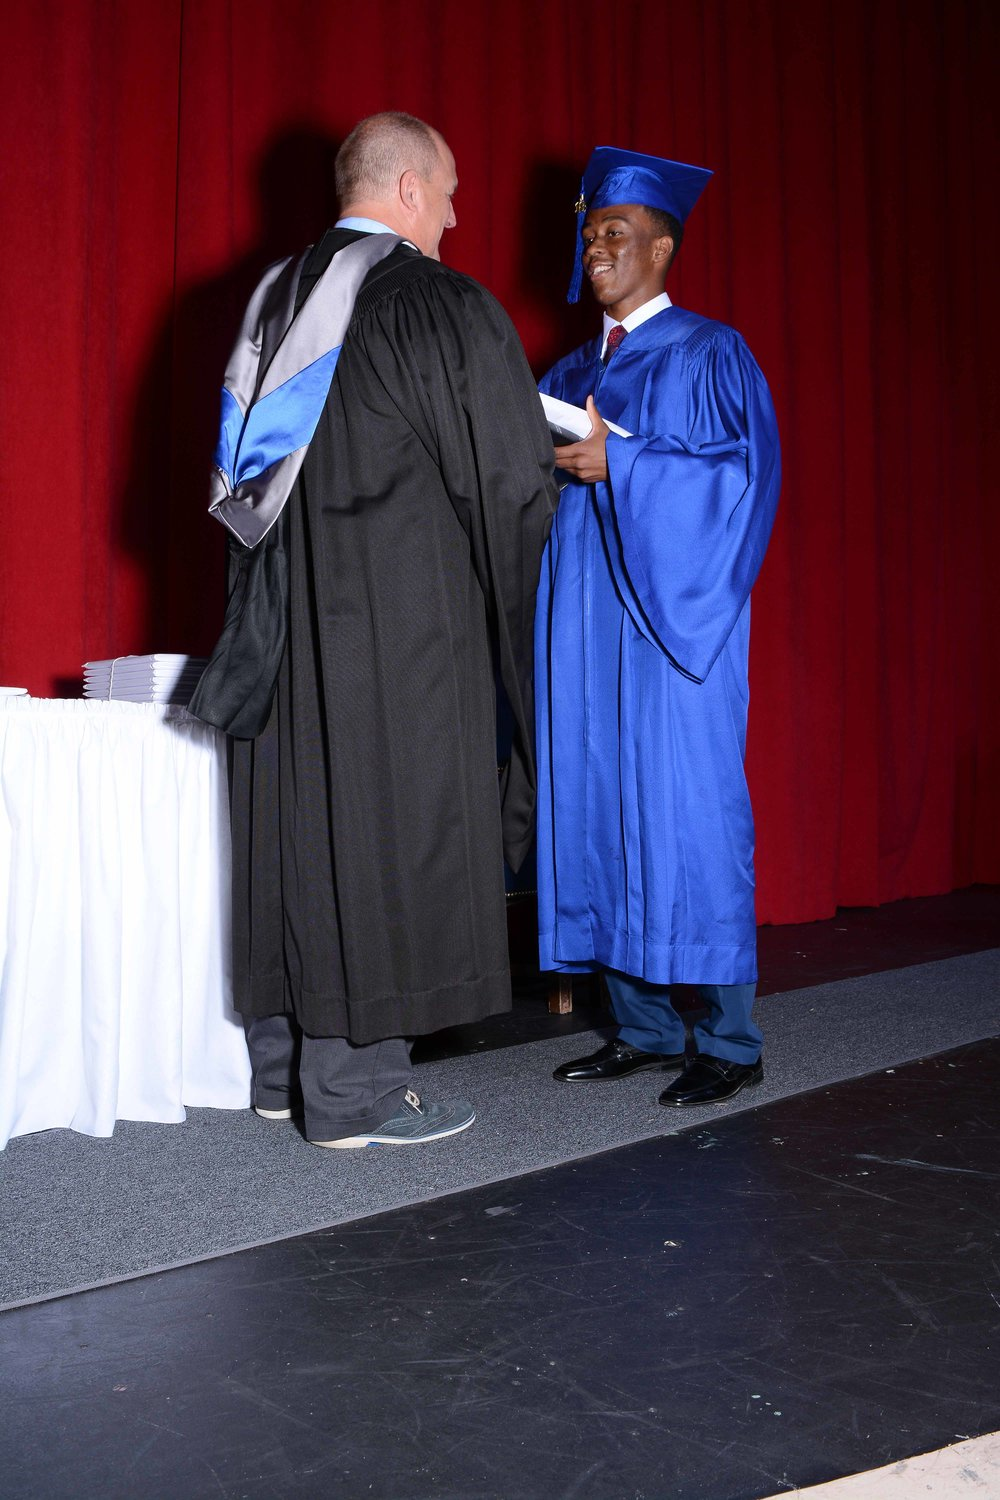 May14 Commencement163.jpg